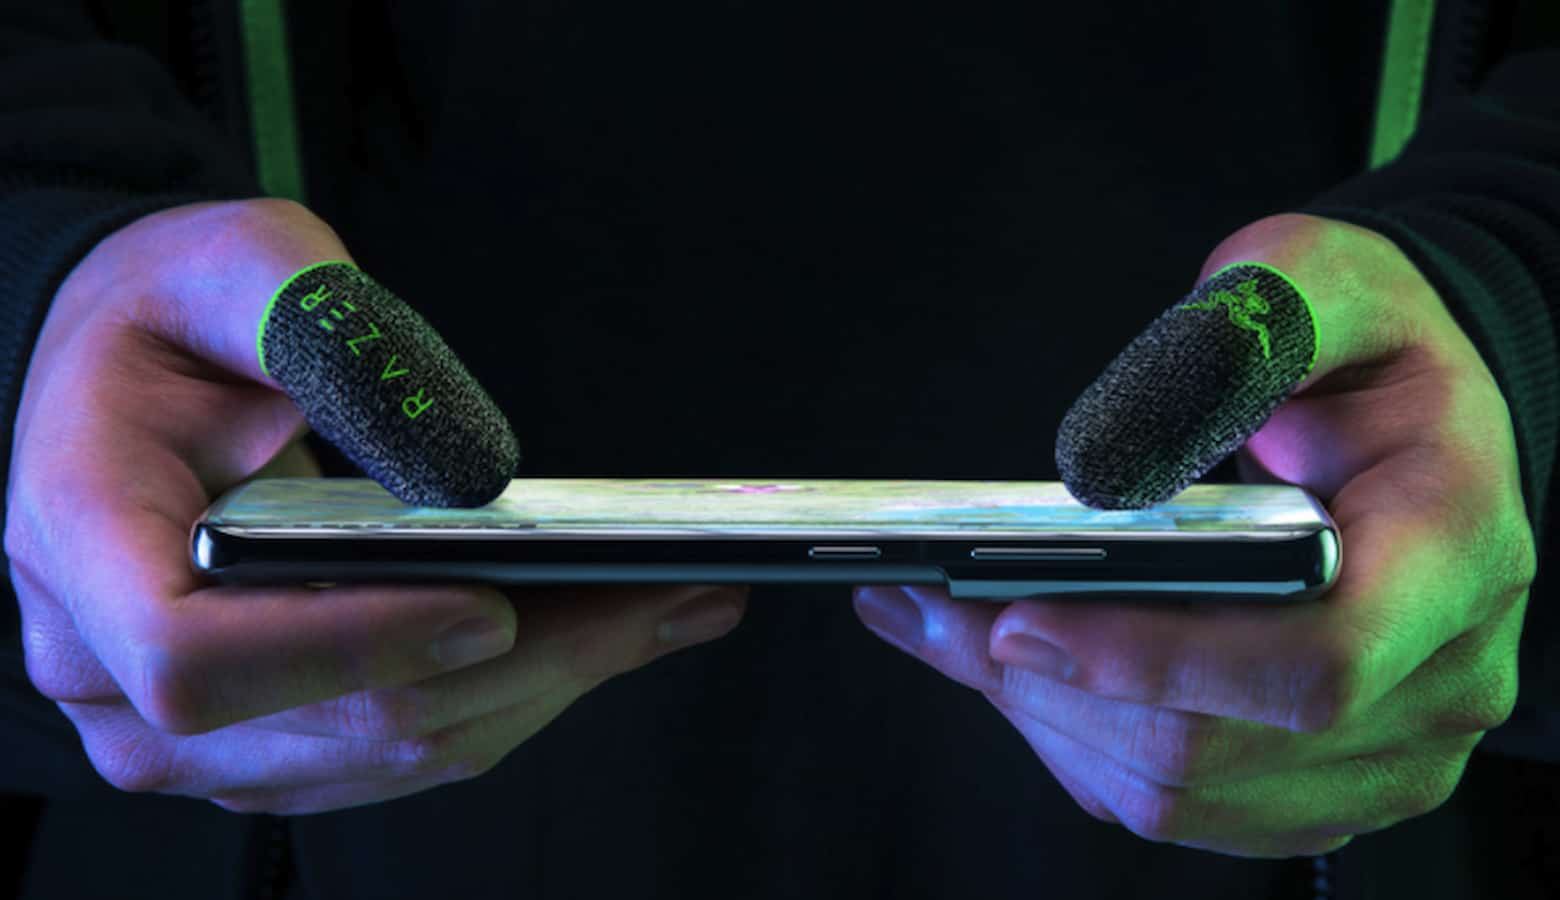 Razer's 'non-slip' finger sleeves takes gaming to new level photo from KnowTechie